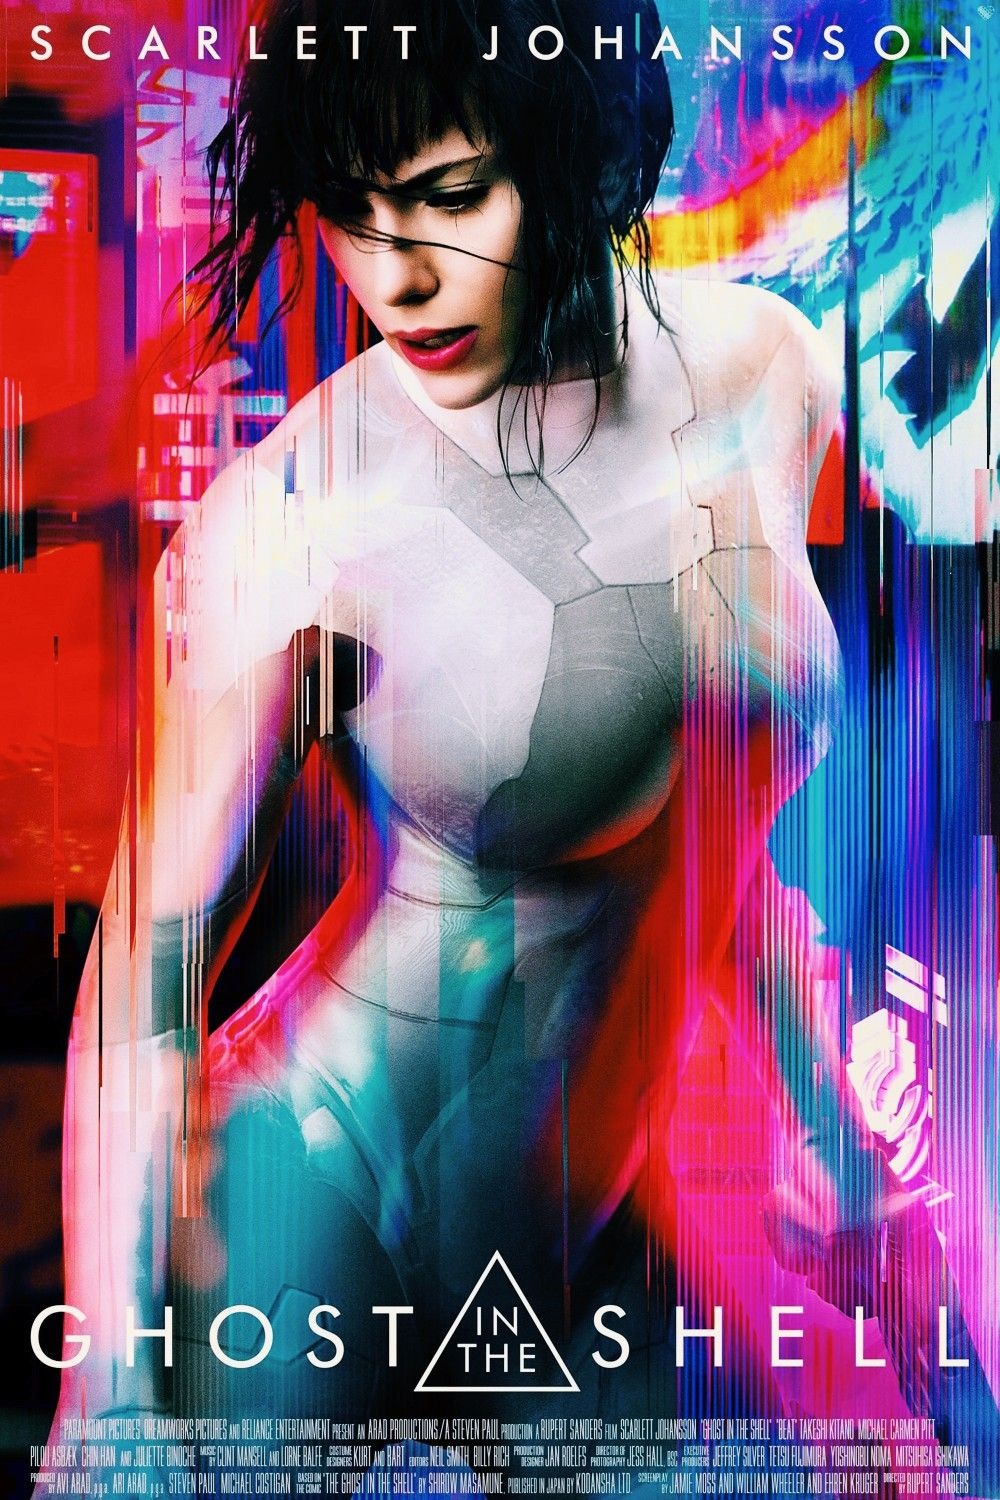 Ghost In The Shell Is A 2017 American Science Fiction Action Film Directed By Rupert Sanders Https En Wikipedia Org Wiki Ghost In T Filmplakate Kino Hd Filme